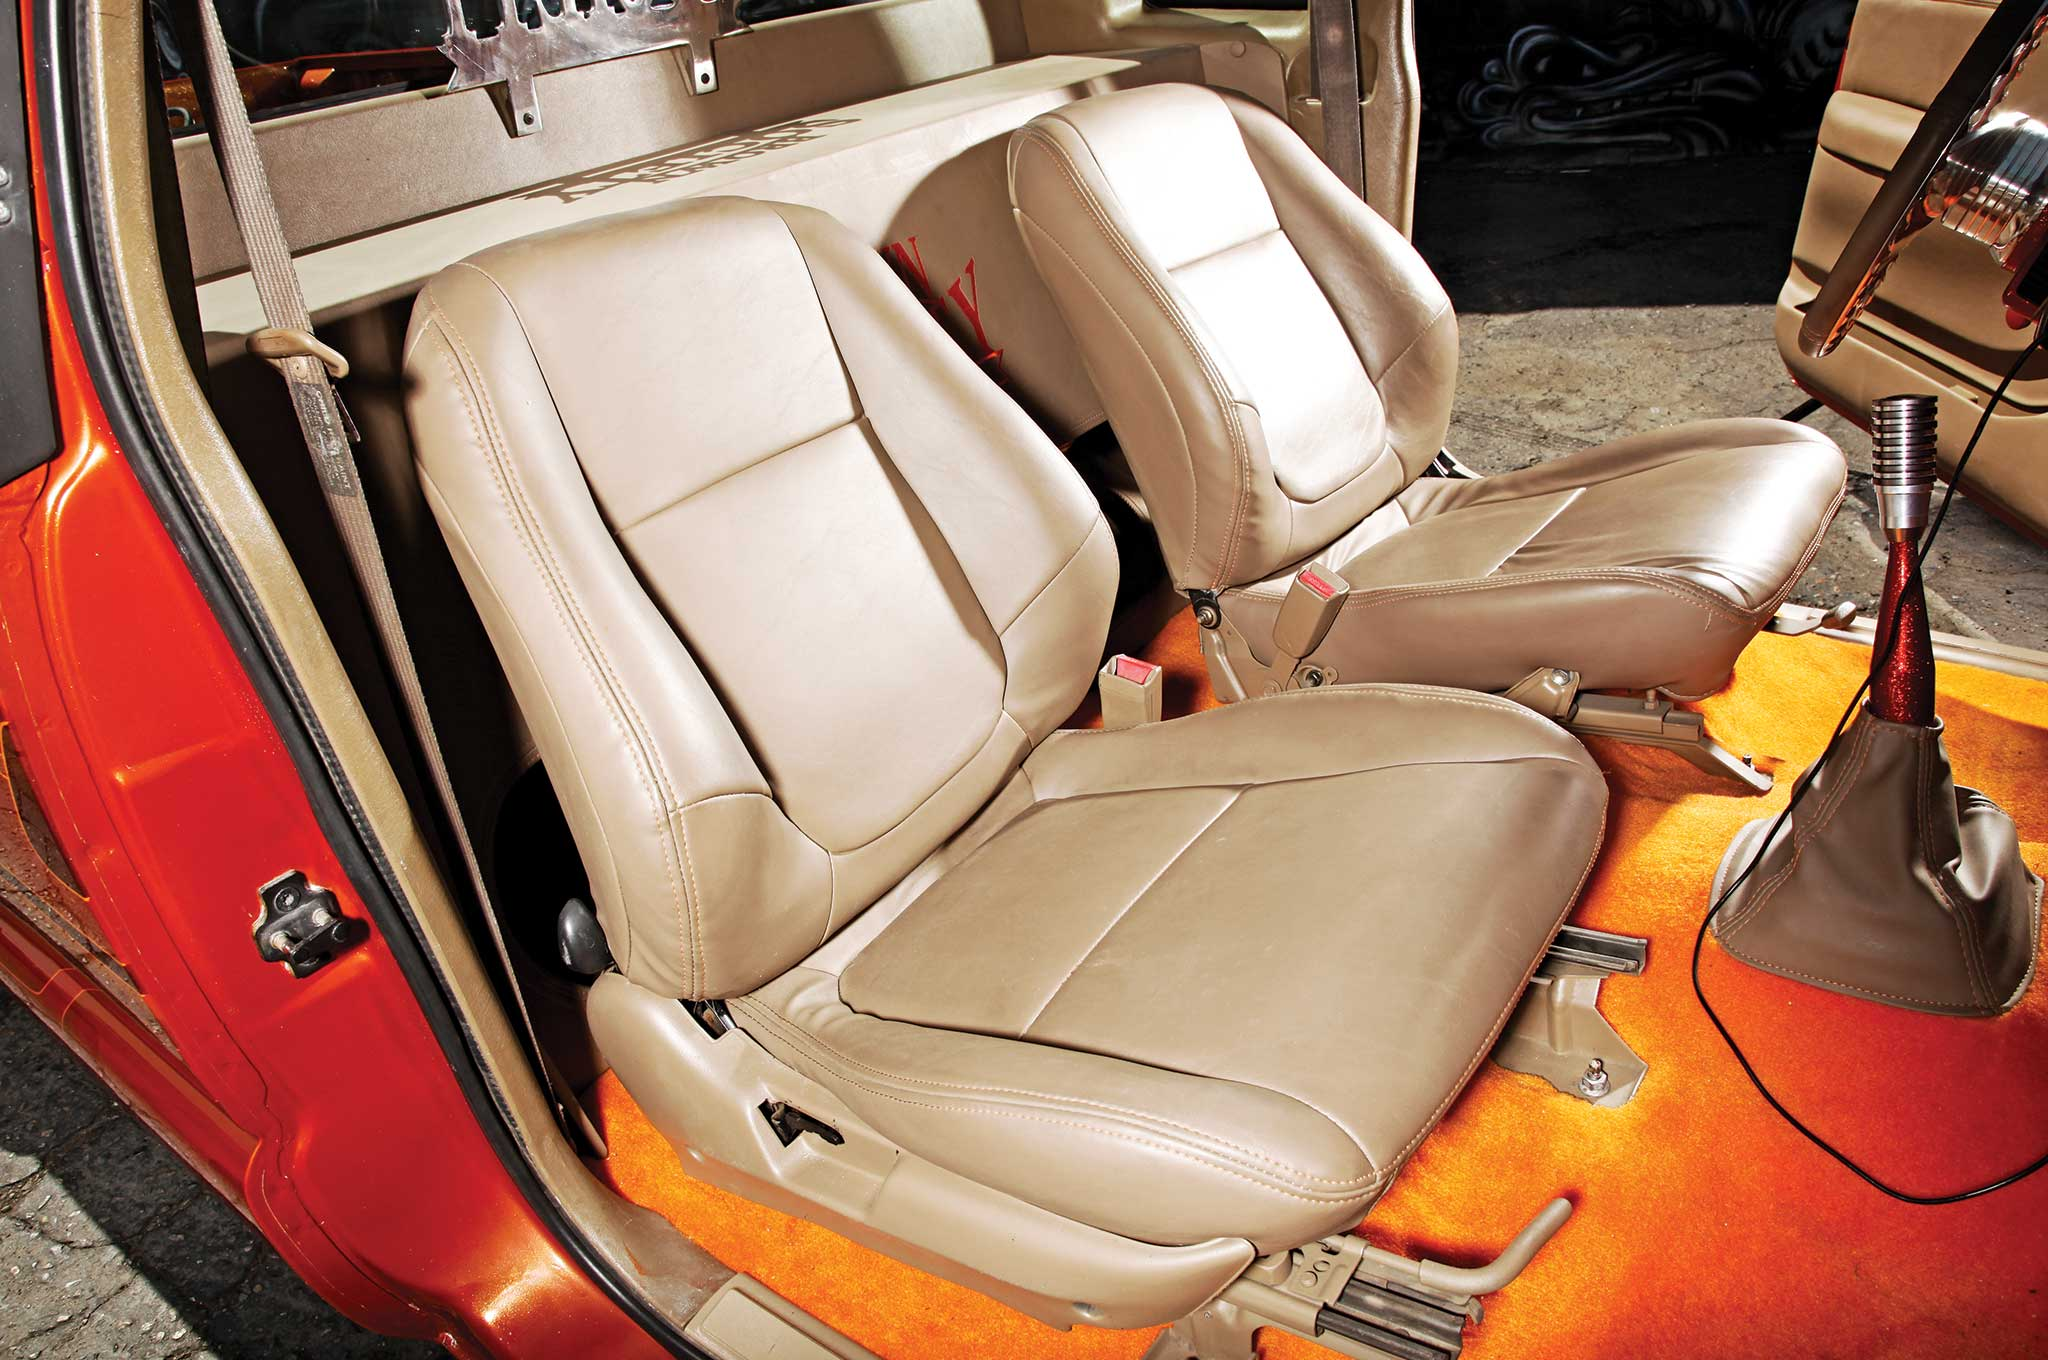 006 1996 Chevy S10 Tan Leather Bucket Seats